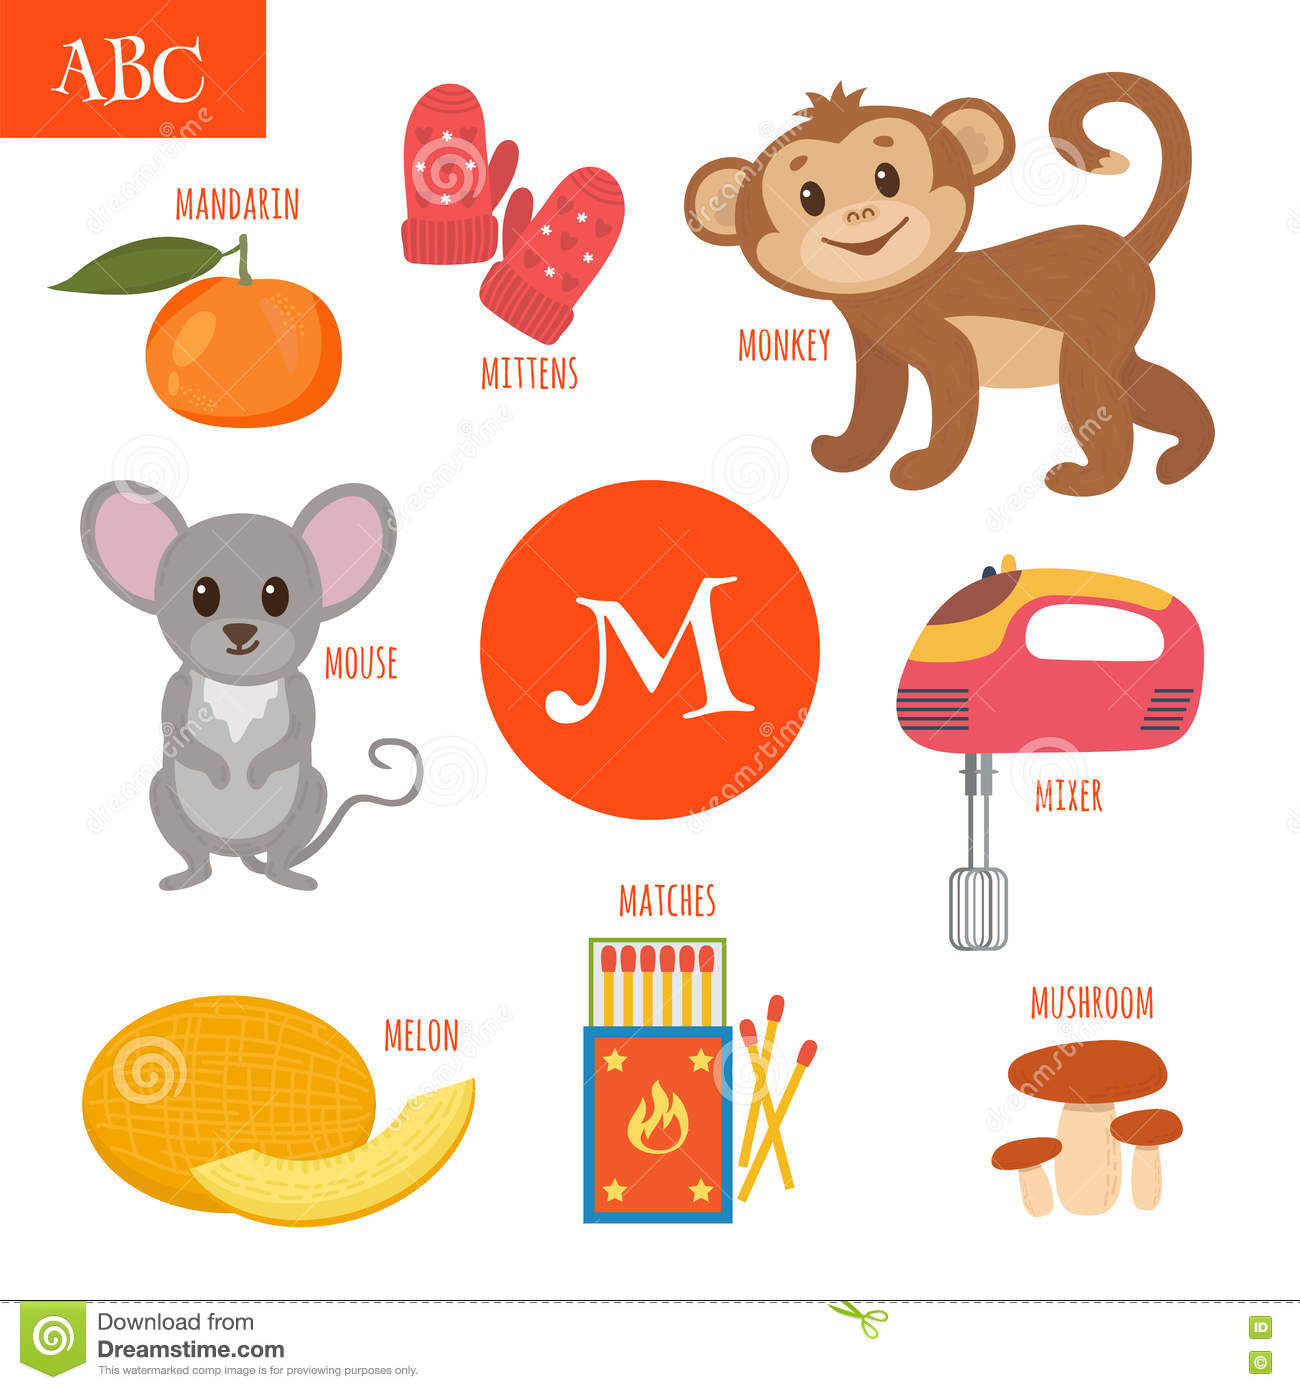 Letter M Cartoon Alphabet For Children Monkey Mouse Mushroom Stock Vector